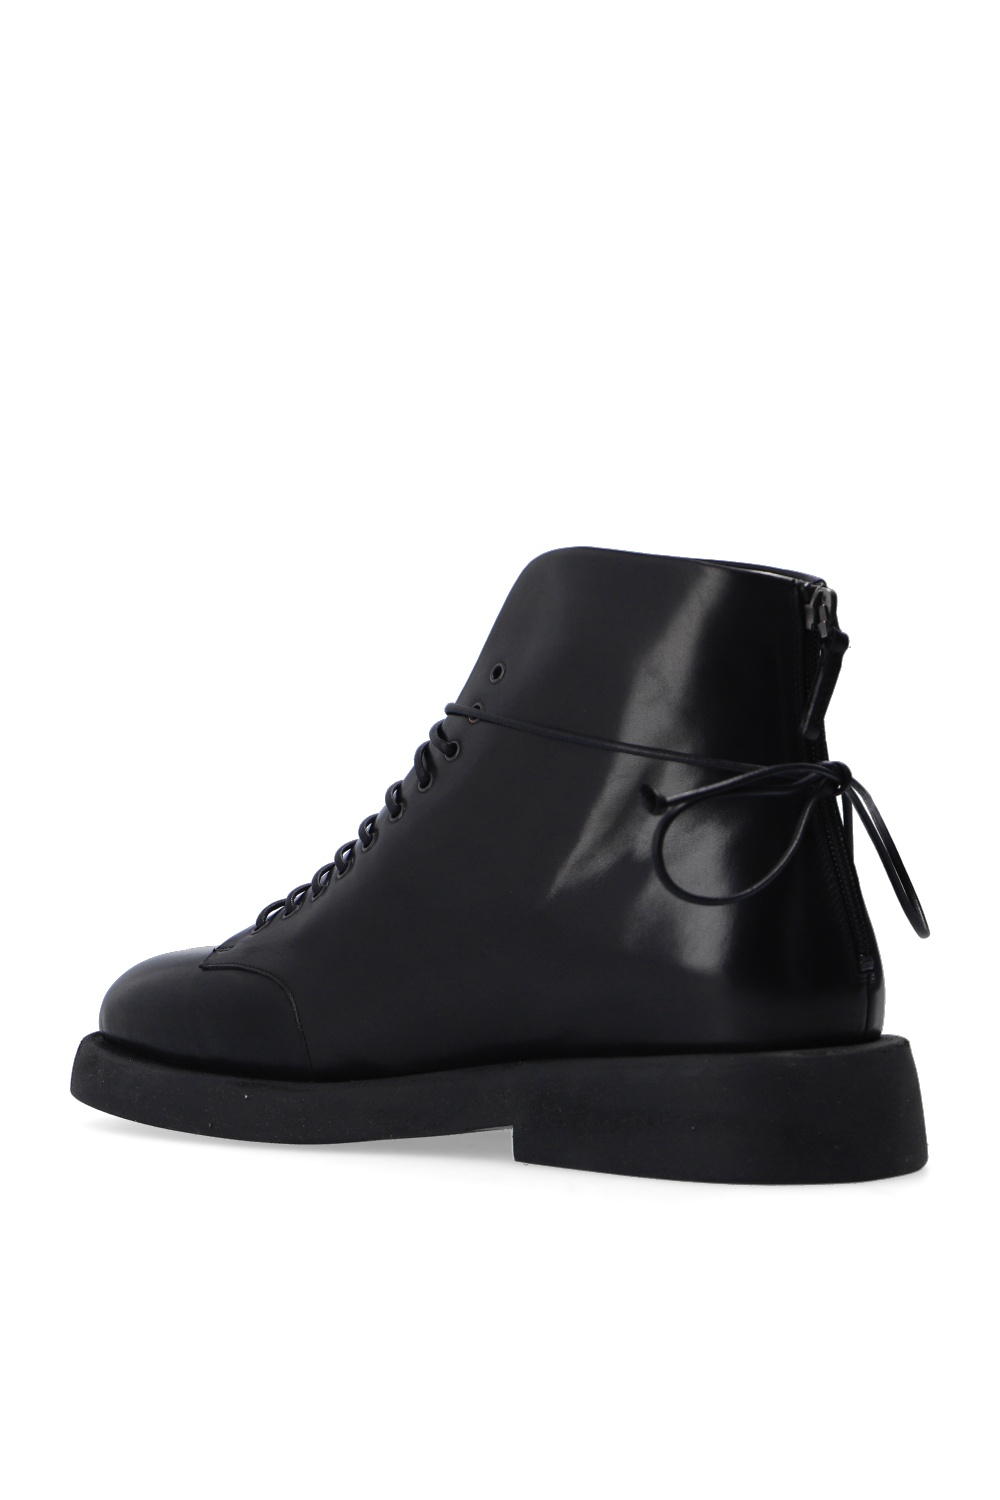 Marsell Leather ankle boots